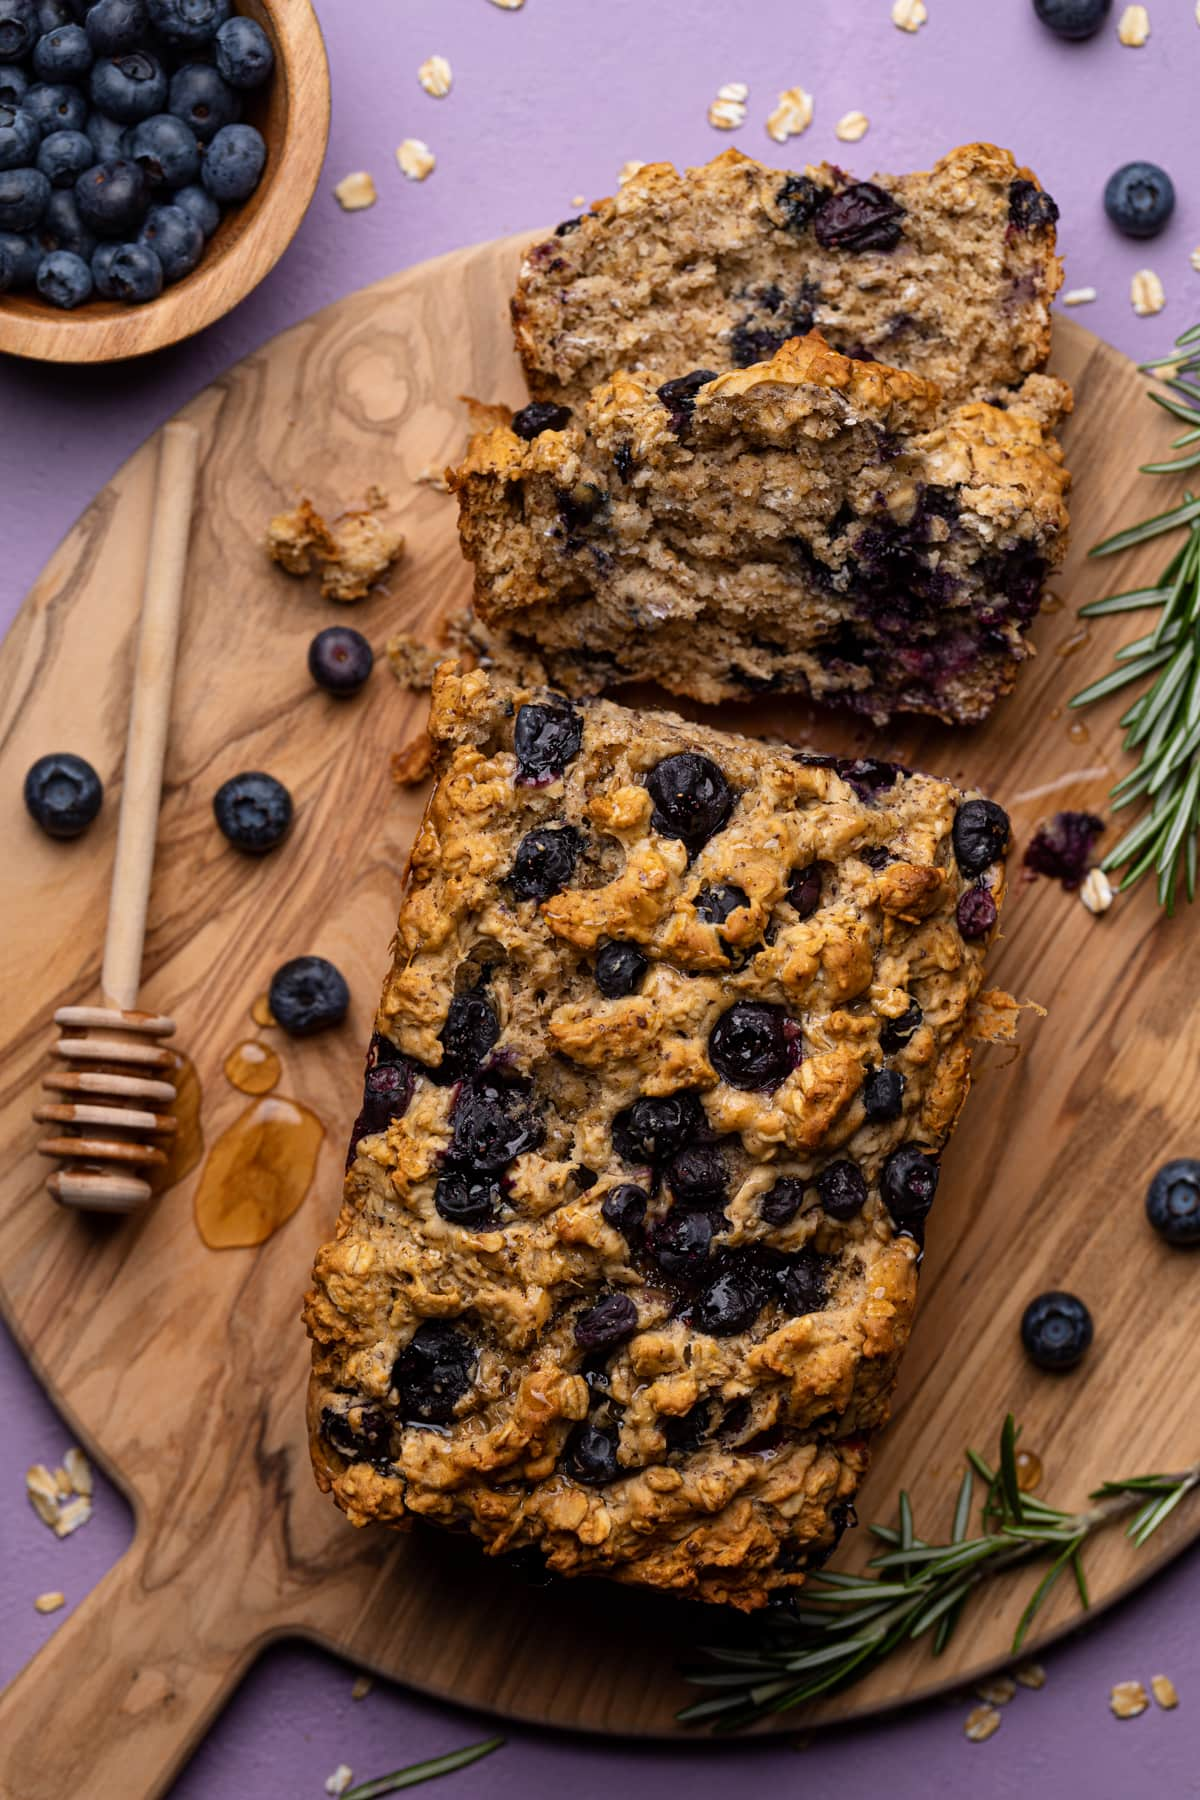 Healthy Blueberry Oatmeal Breakfast Bread with slices removed on a wooden cutting board